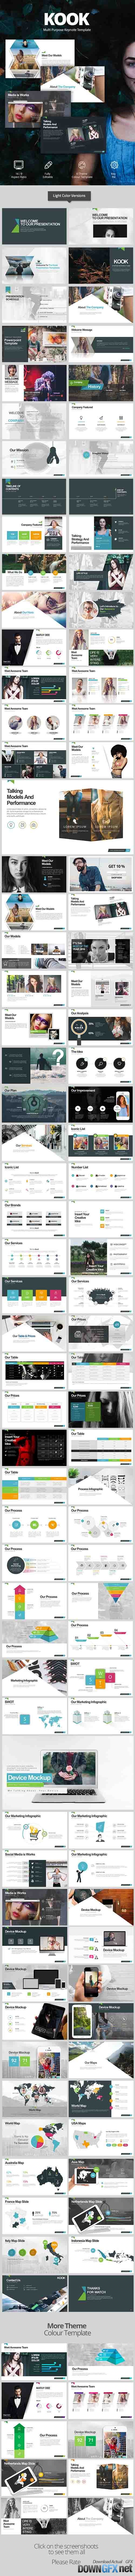 KooK Keynote Templates 19650364